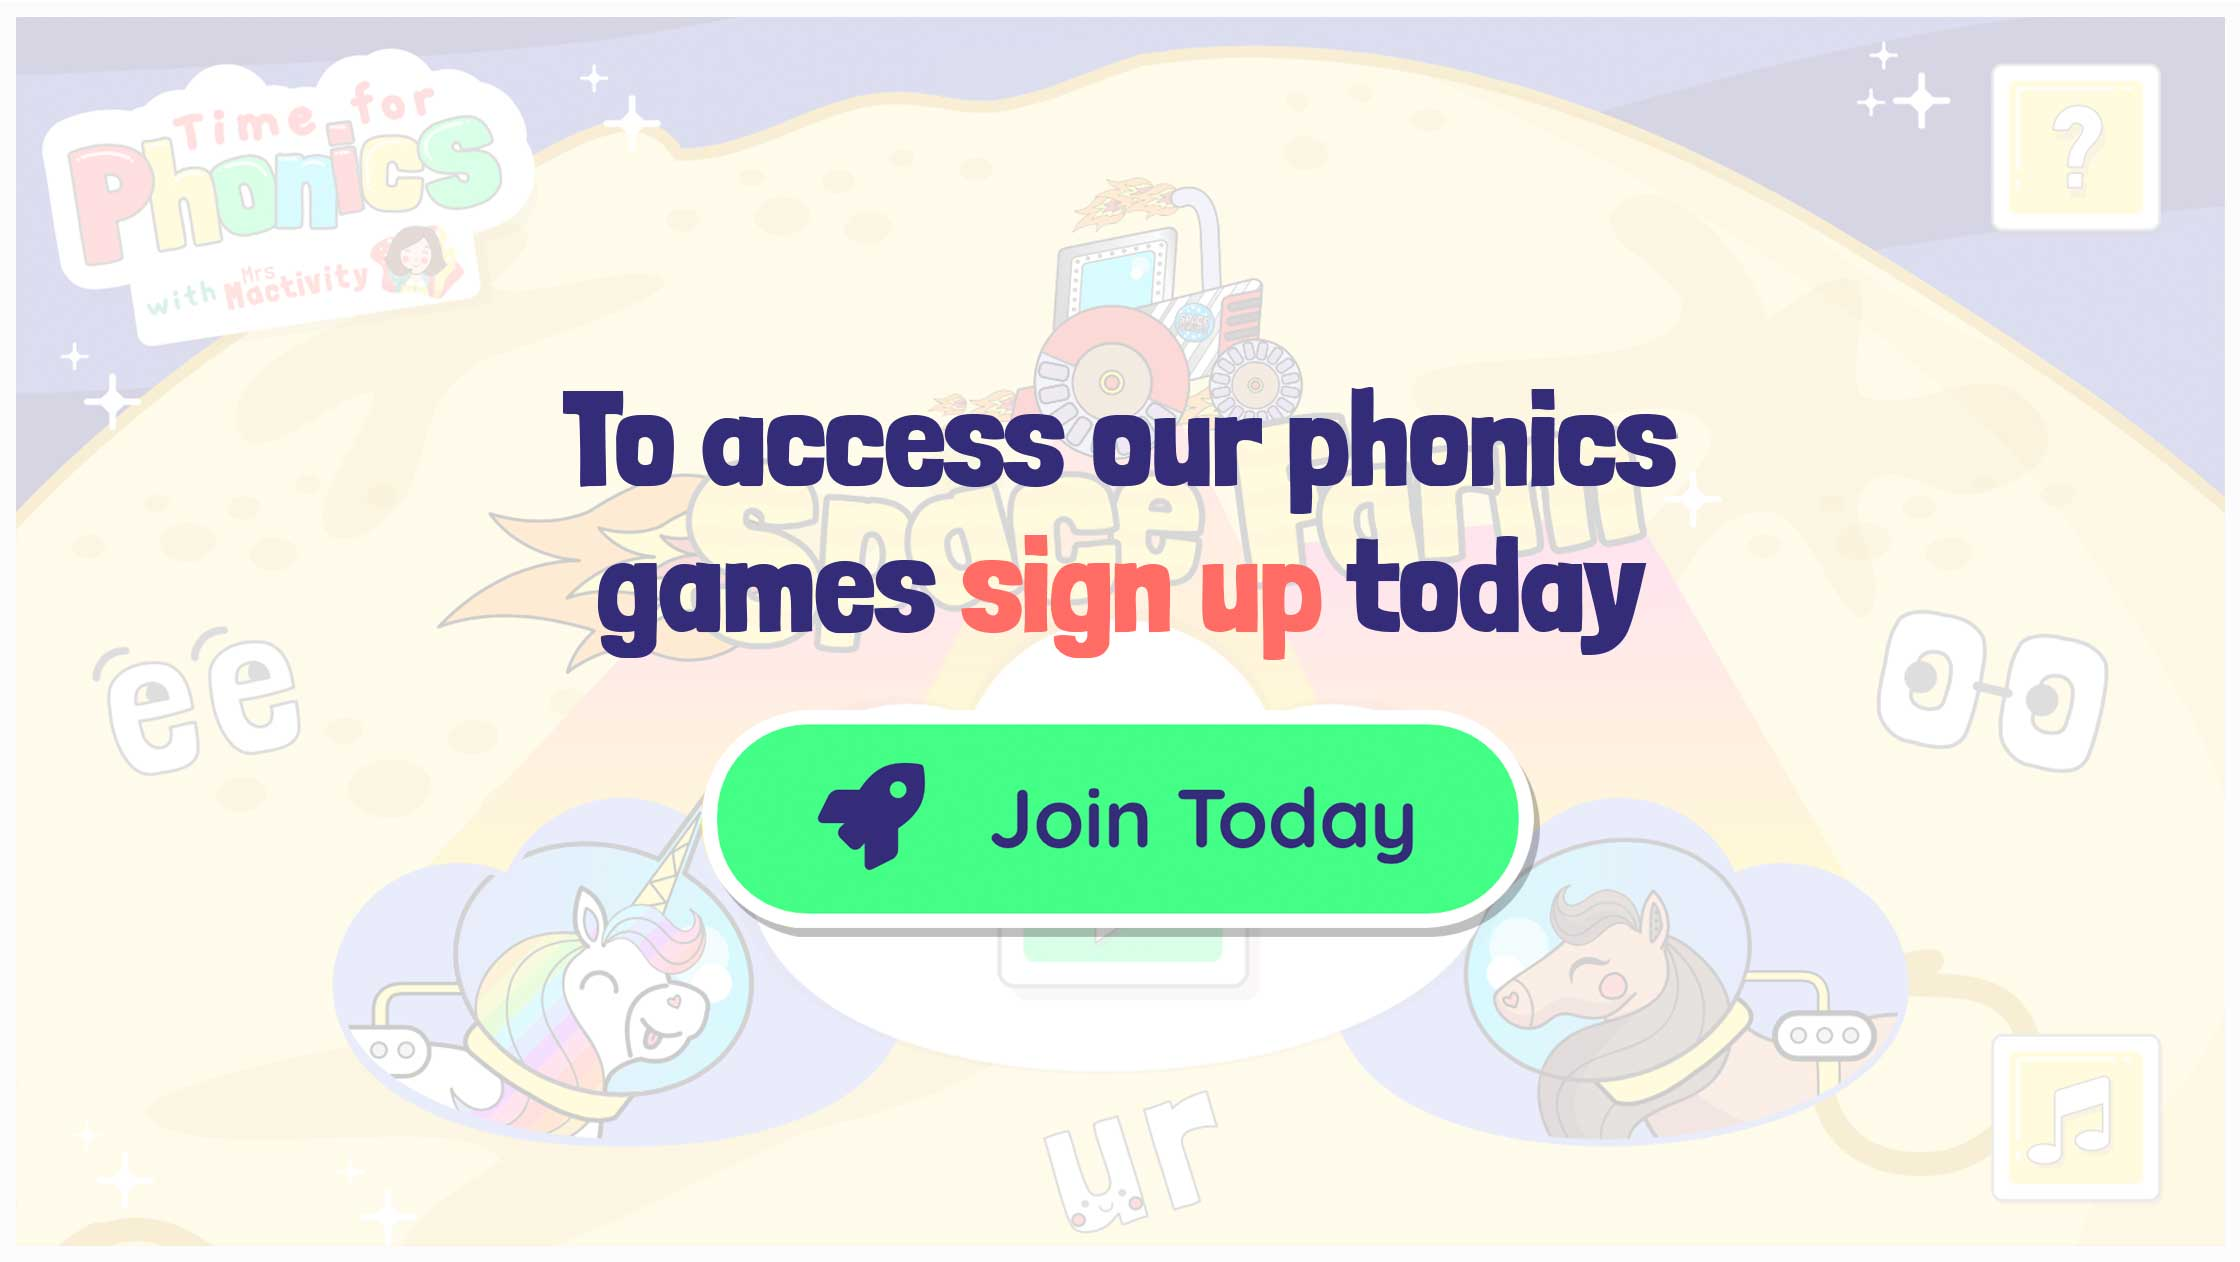 Free phonics games for kids UK children EYFS KS1 phase 2 3 4 5